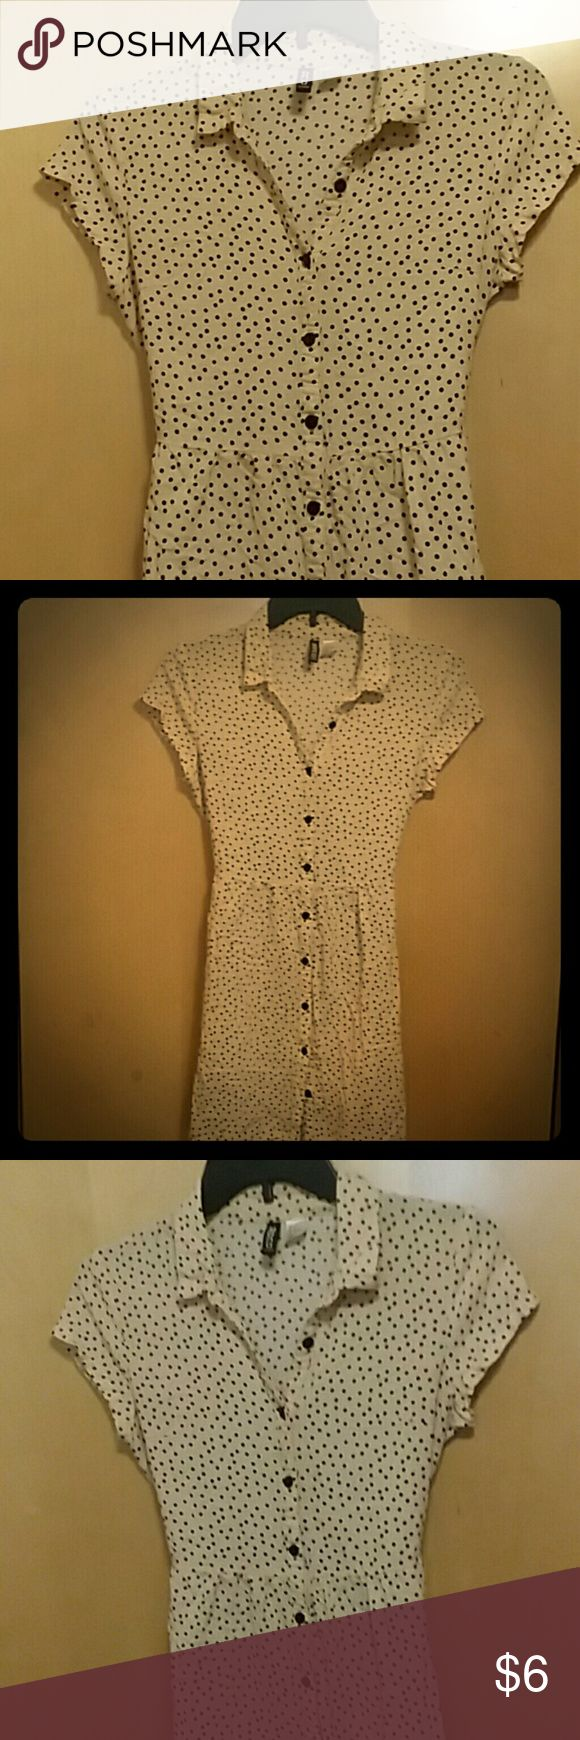 H&M polka dot button down top Button down top. Could be worn as a short dress. Has a tie in the back. No holes or snags :) Divided Tops